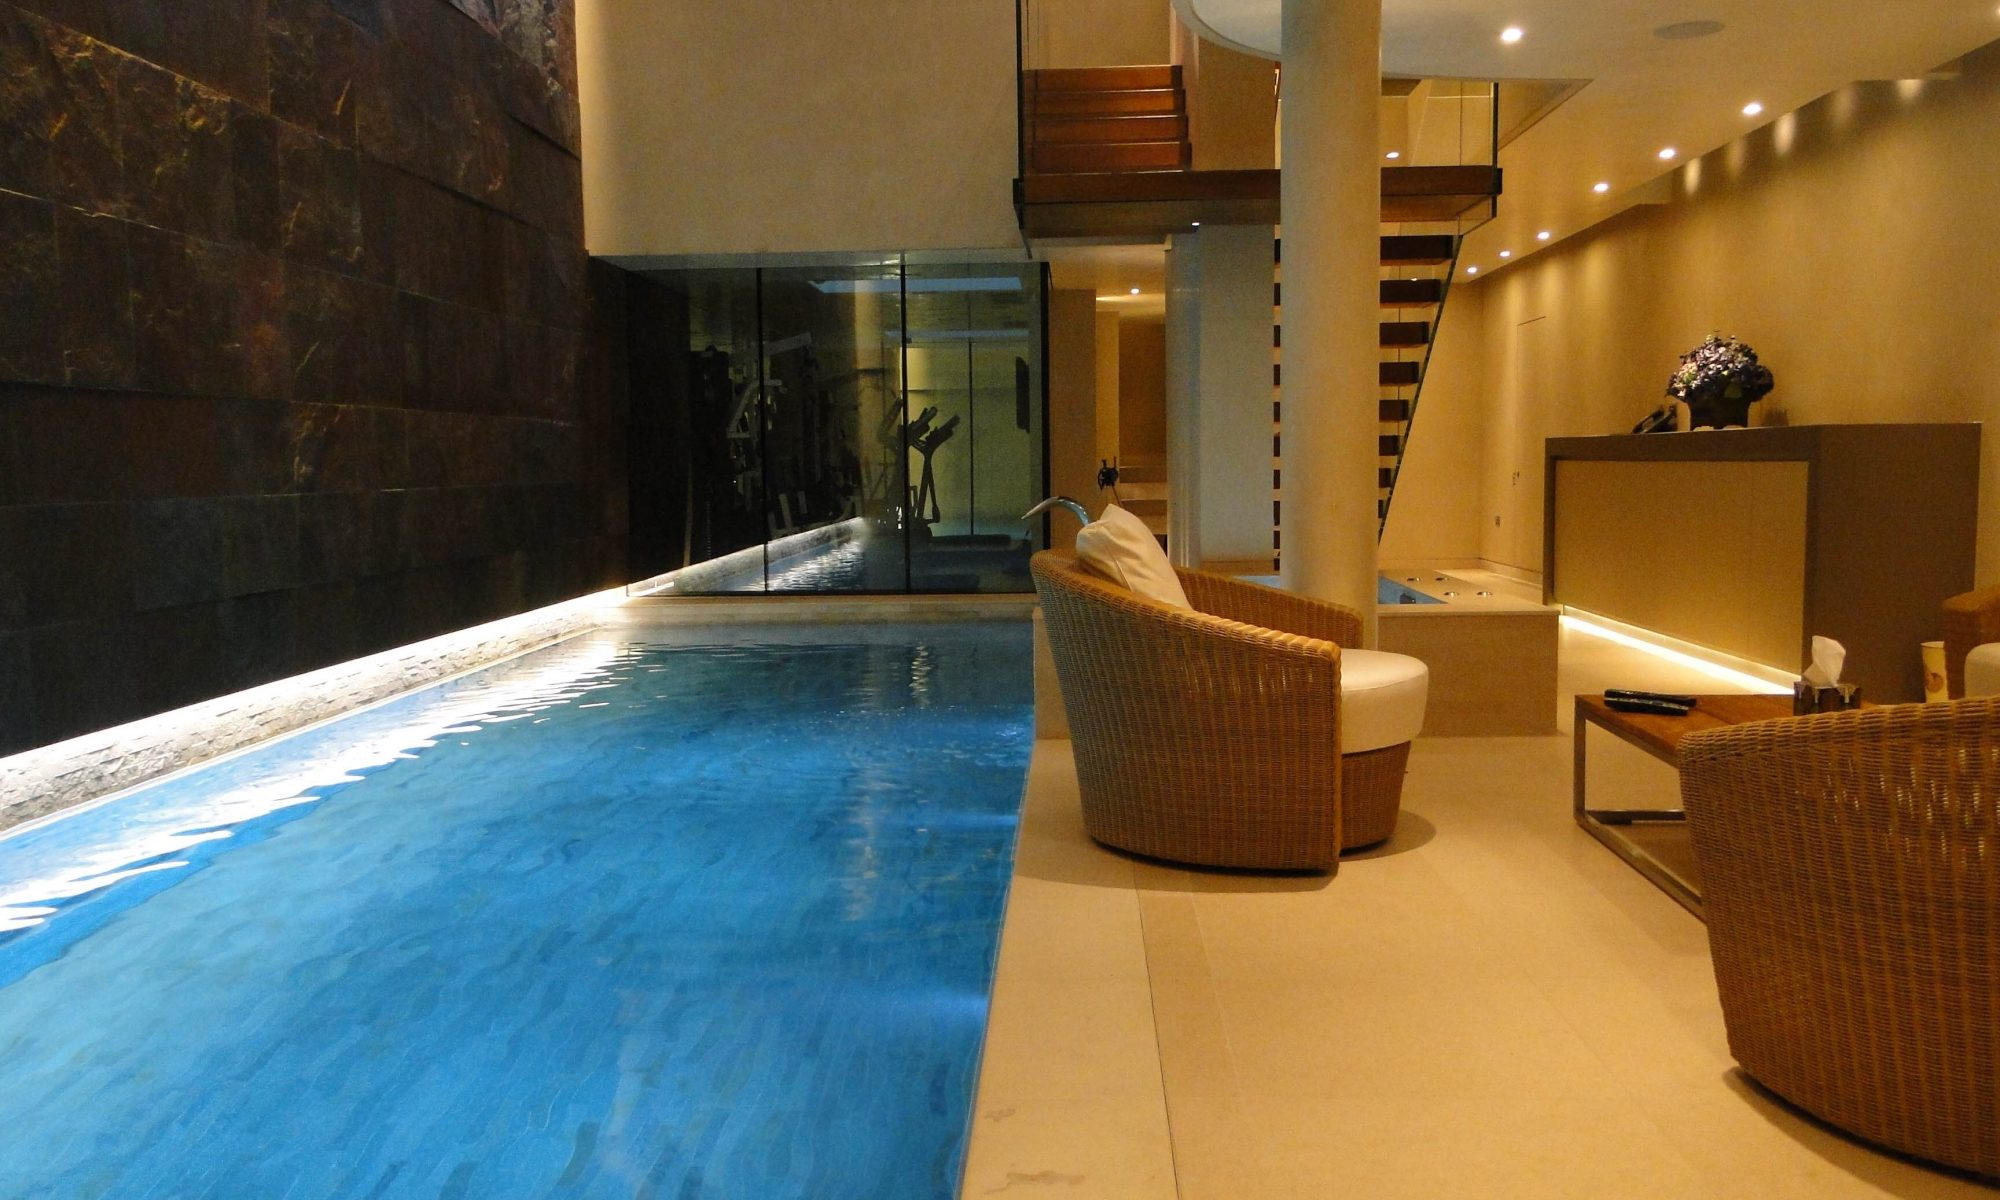 At Specialist Pools Services we undertake Swimming Pool Design, Construction, Servicing & Repair across London & the Home Counties, we offer the highest possible service to our customers.